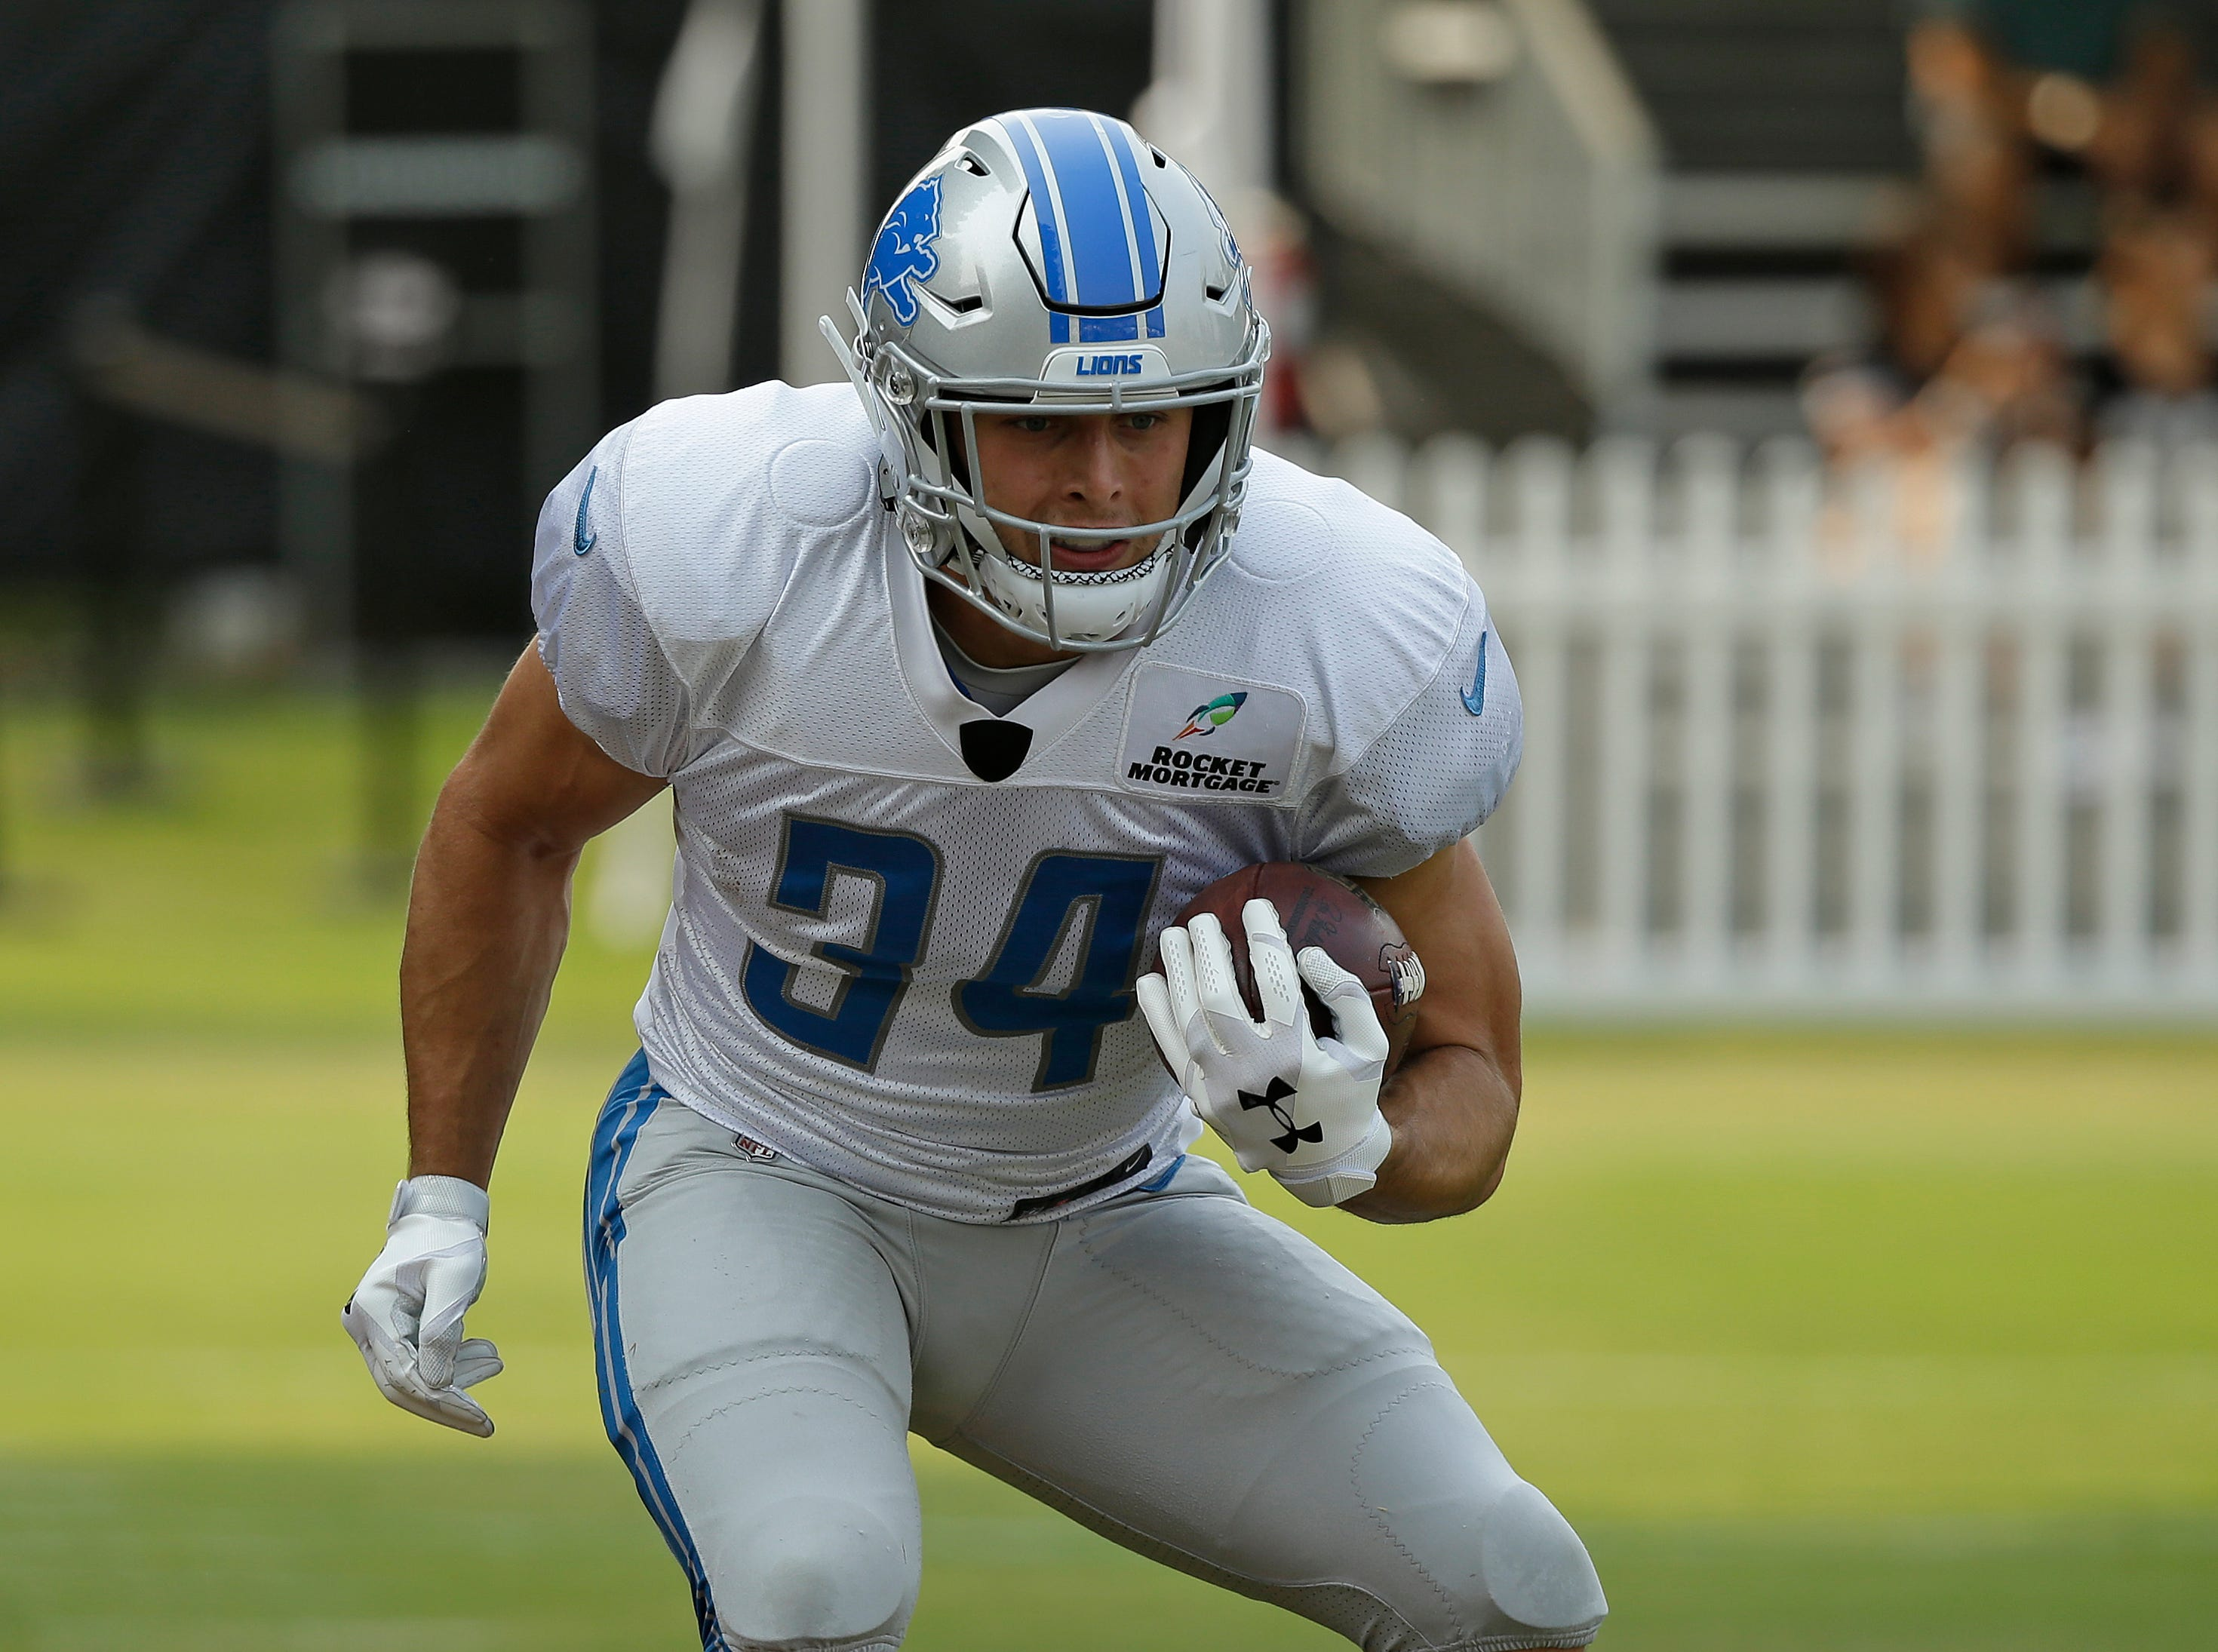 Detroit Lions running back Zach Zenner during NFL football practice Tuesday, Aug. 7, 2018, in Napa, Calif. Both the Oakland Raiders and the Detroit Lions held a joint practice before their upcoming preseason game on Friday. (AP Photo/Eric Risberg)